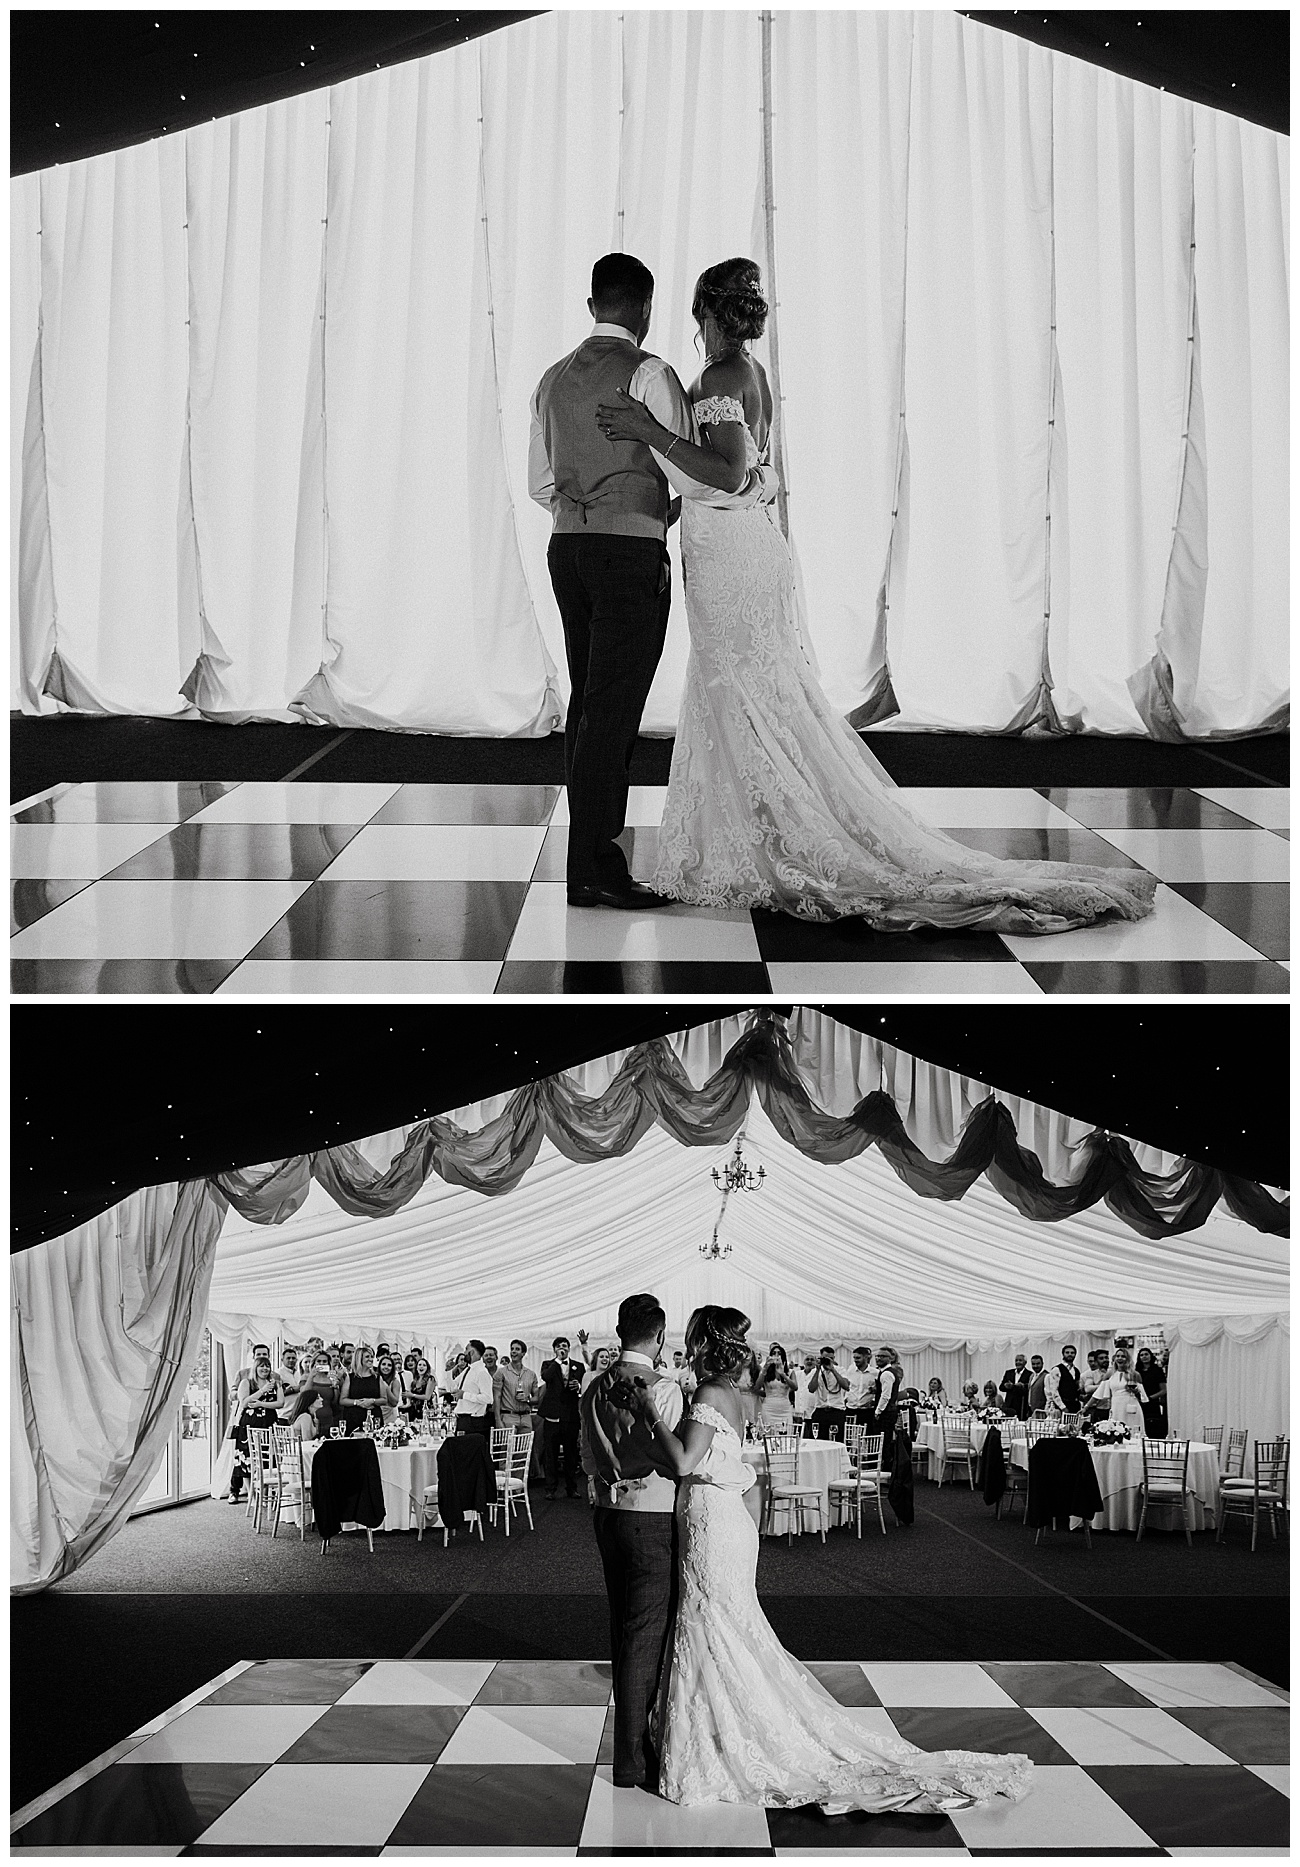 The curtain raises to reveal the bride and groom on the dance floor